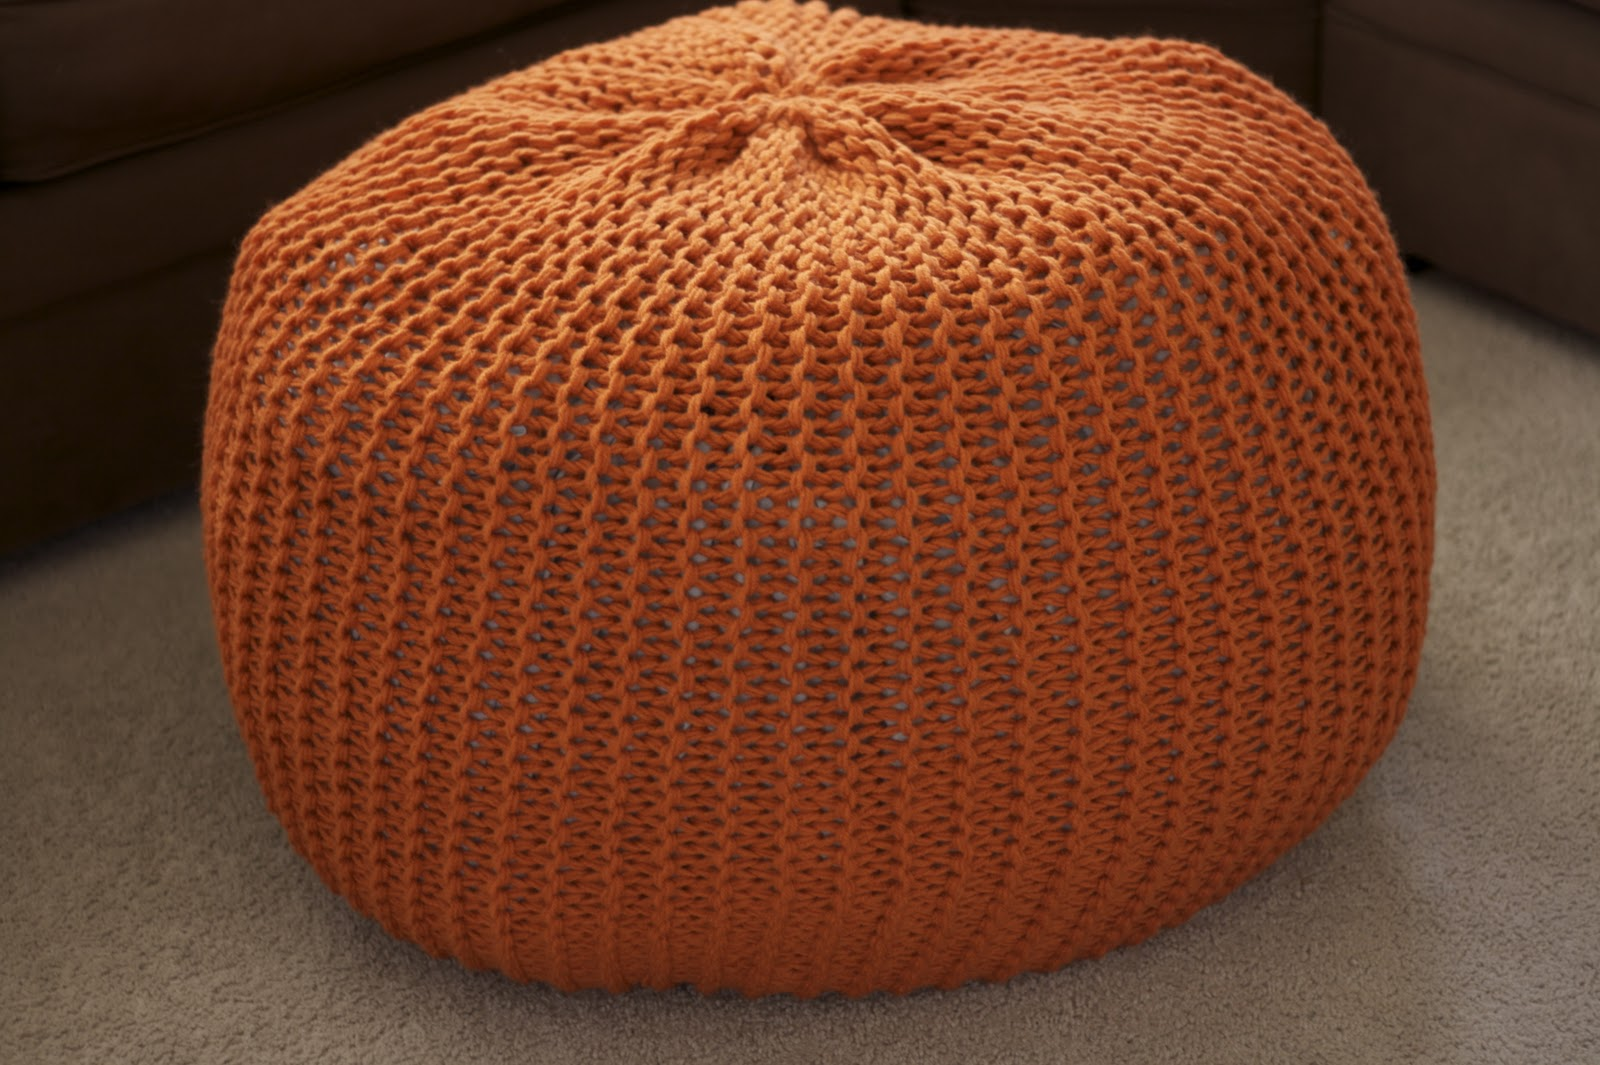 Orange Living Room Accessories Knitted Poufsthe Pinterest Project The Csi Project